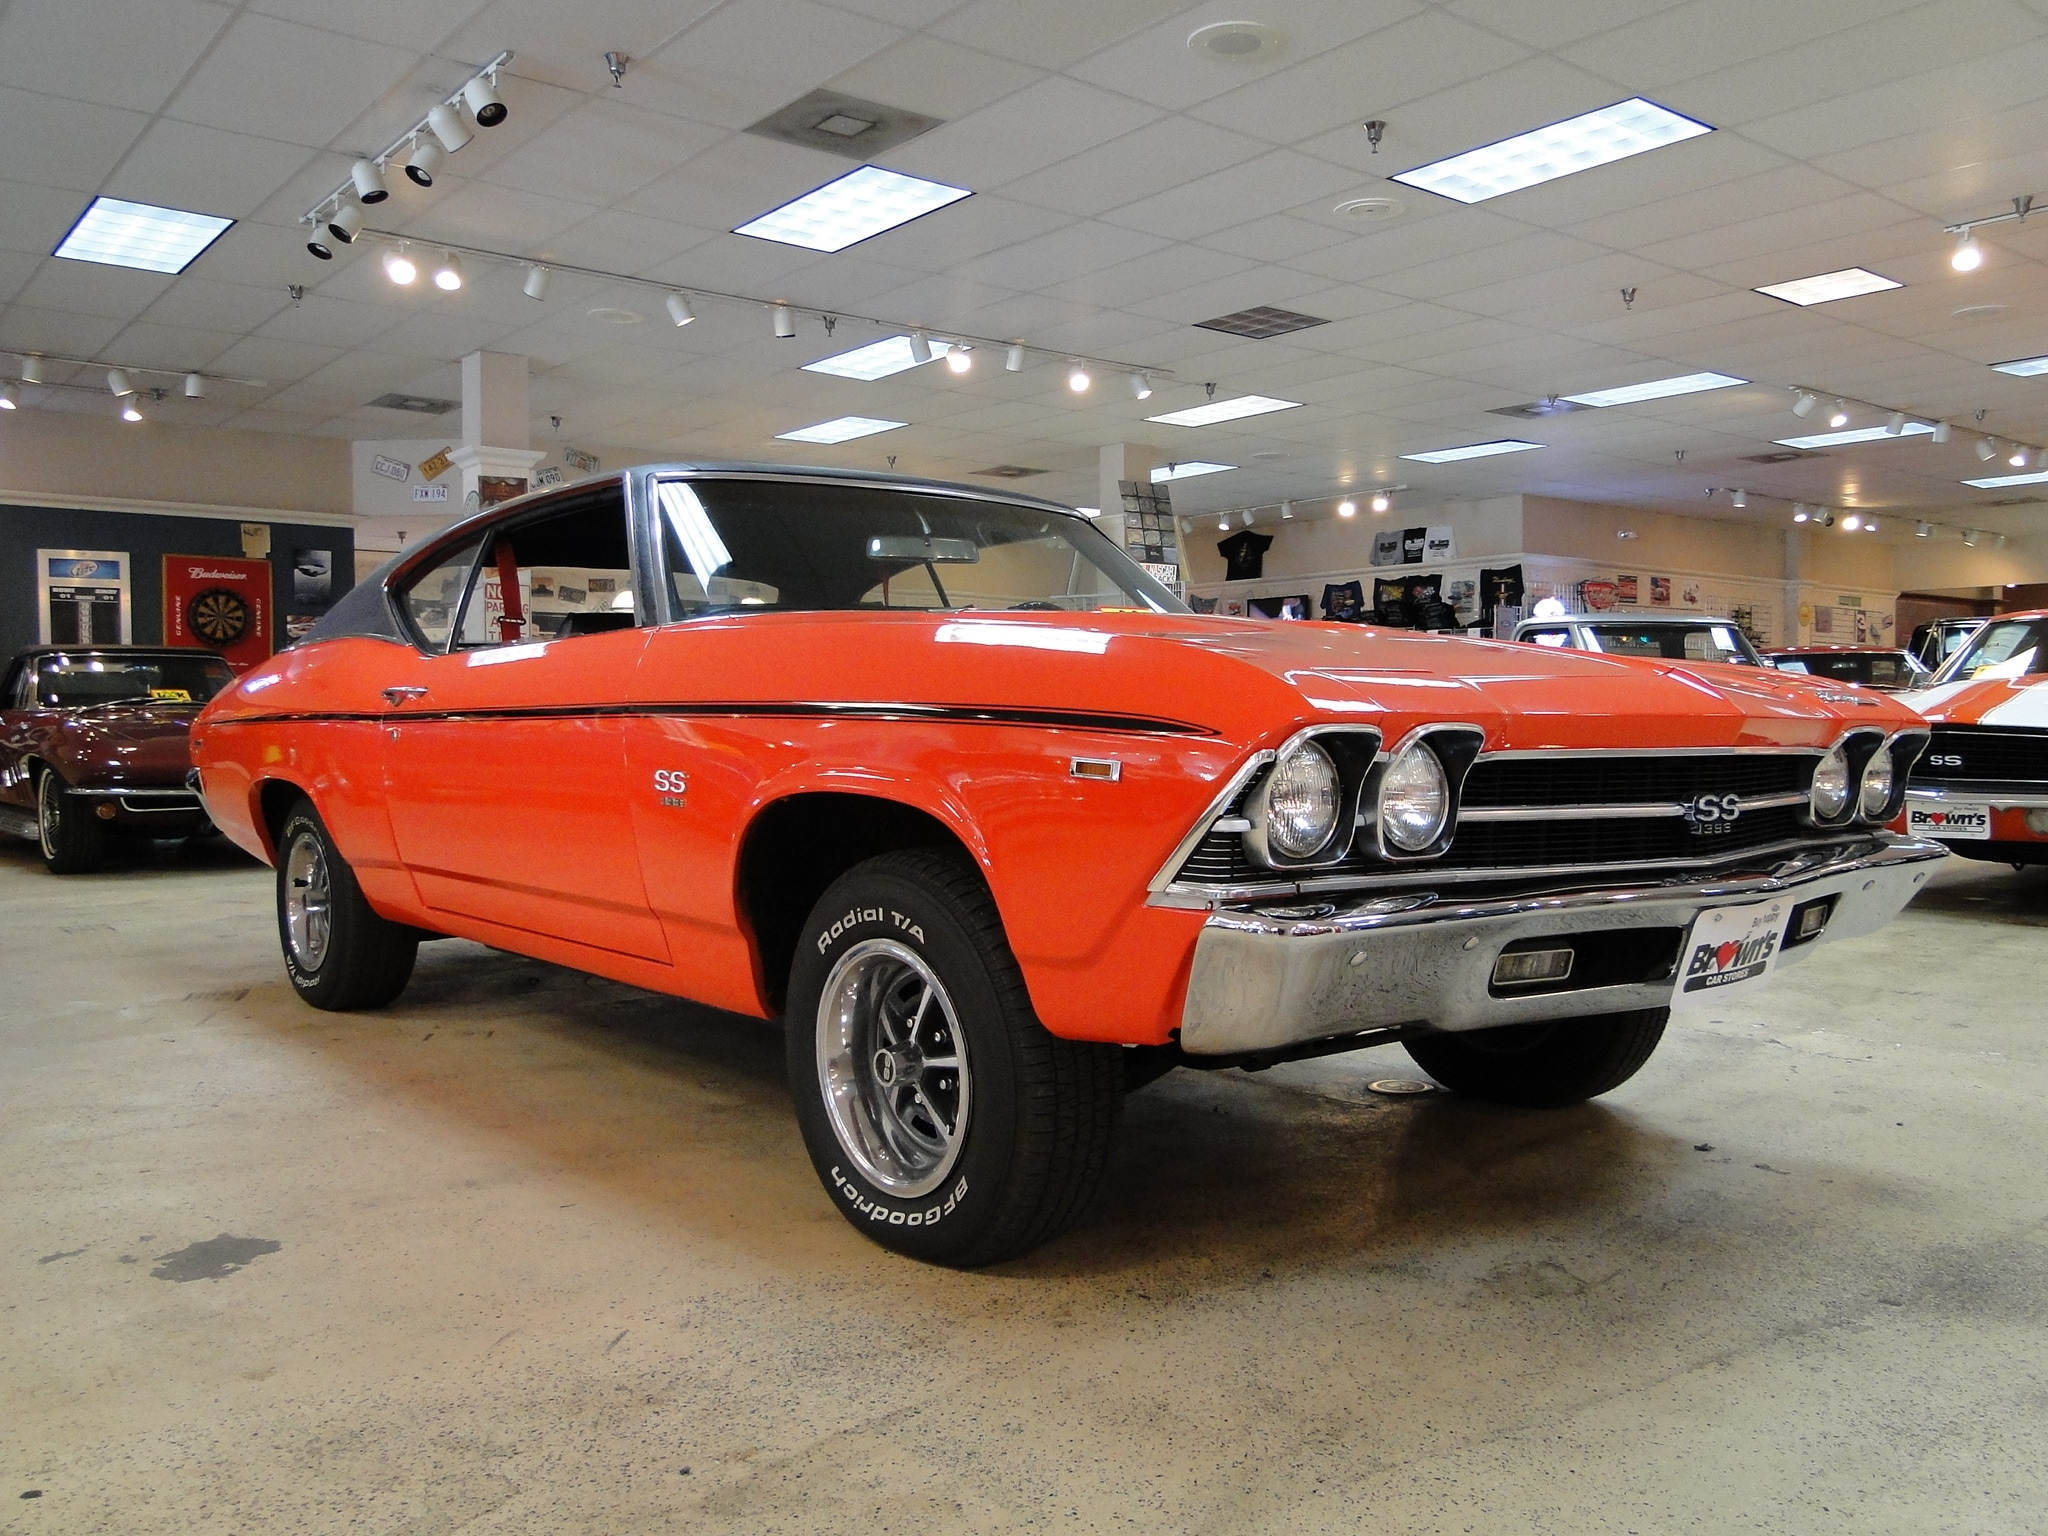 1969 Chevrolet Chevelle REAL Super Sport Coupe